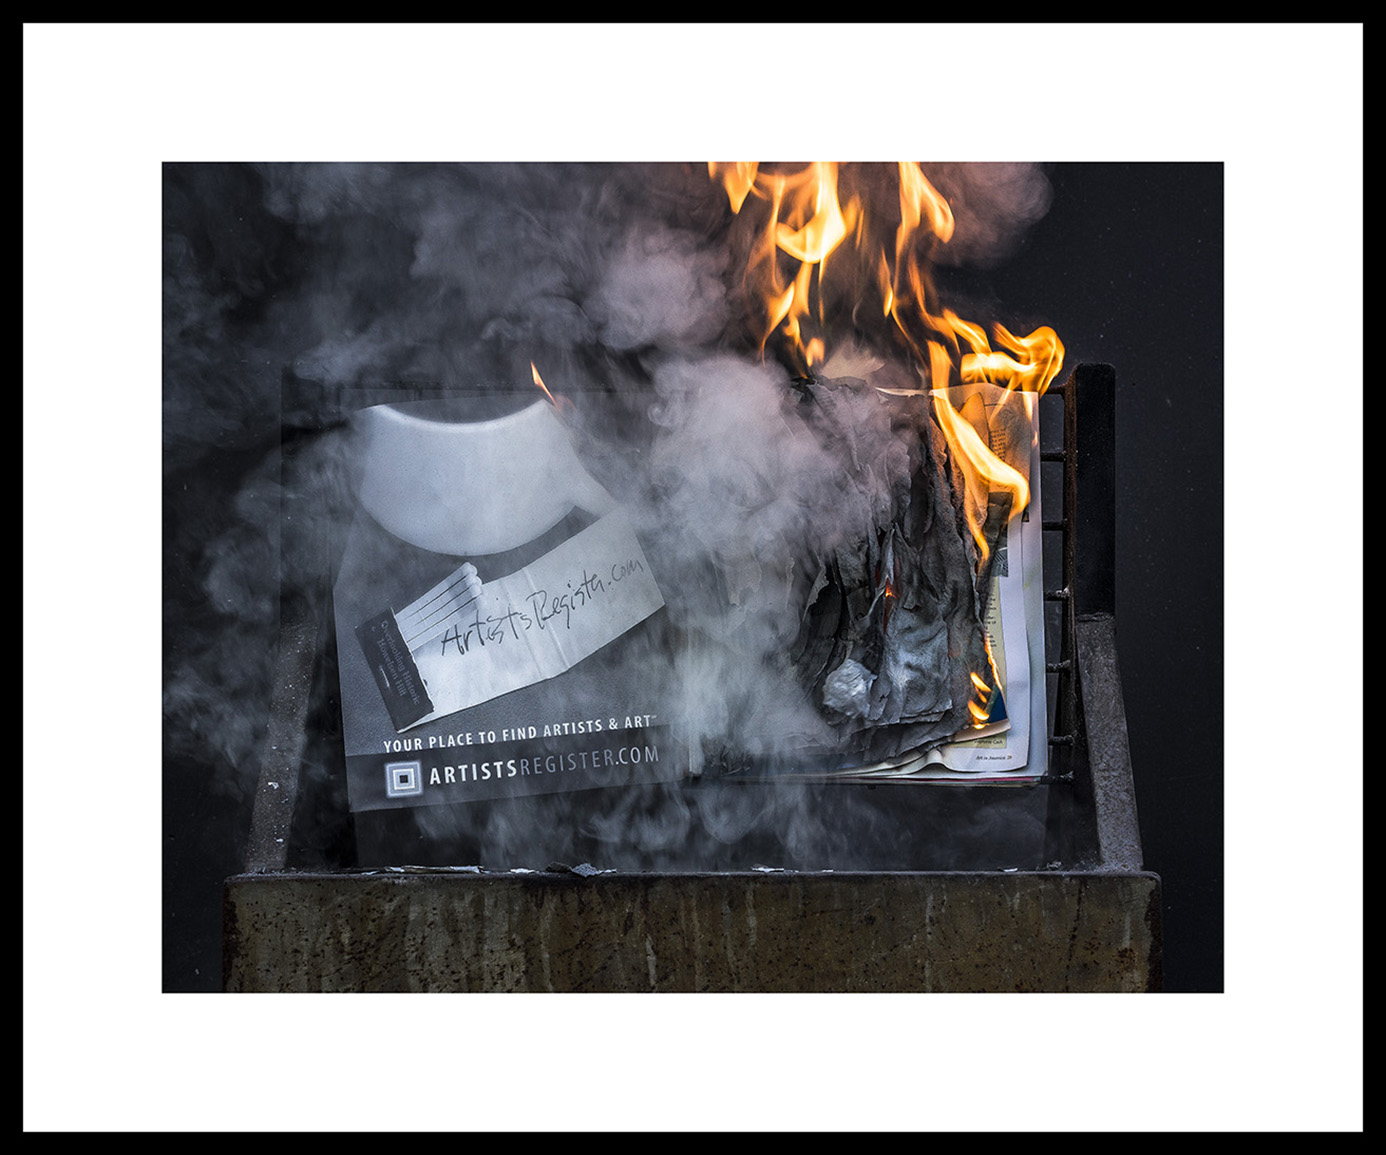 AiA Dec 2003 #0280F, 2019   Archival ink jet print on Epson exhibition fiber paper, framed Image: 18x24in, Paper: 24x30in, Frame: 25x31in, Edition of 5 with 2AP